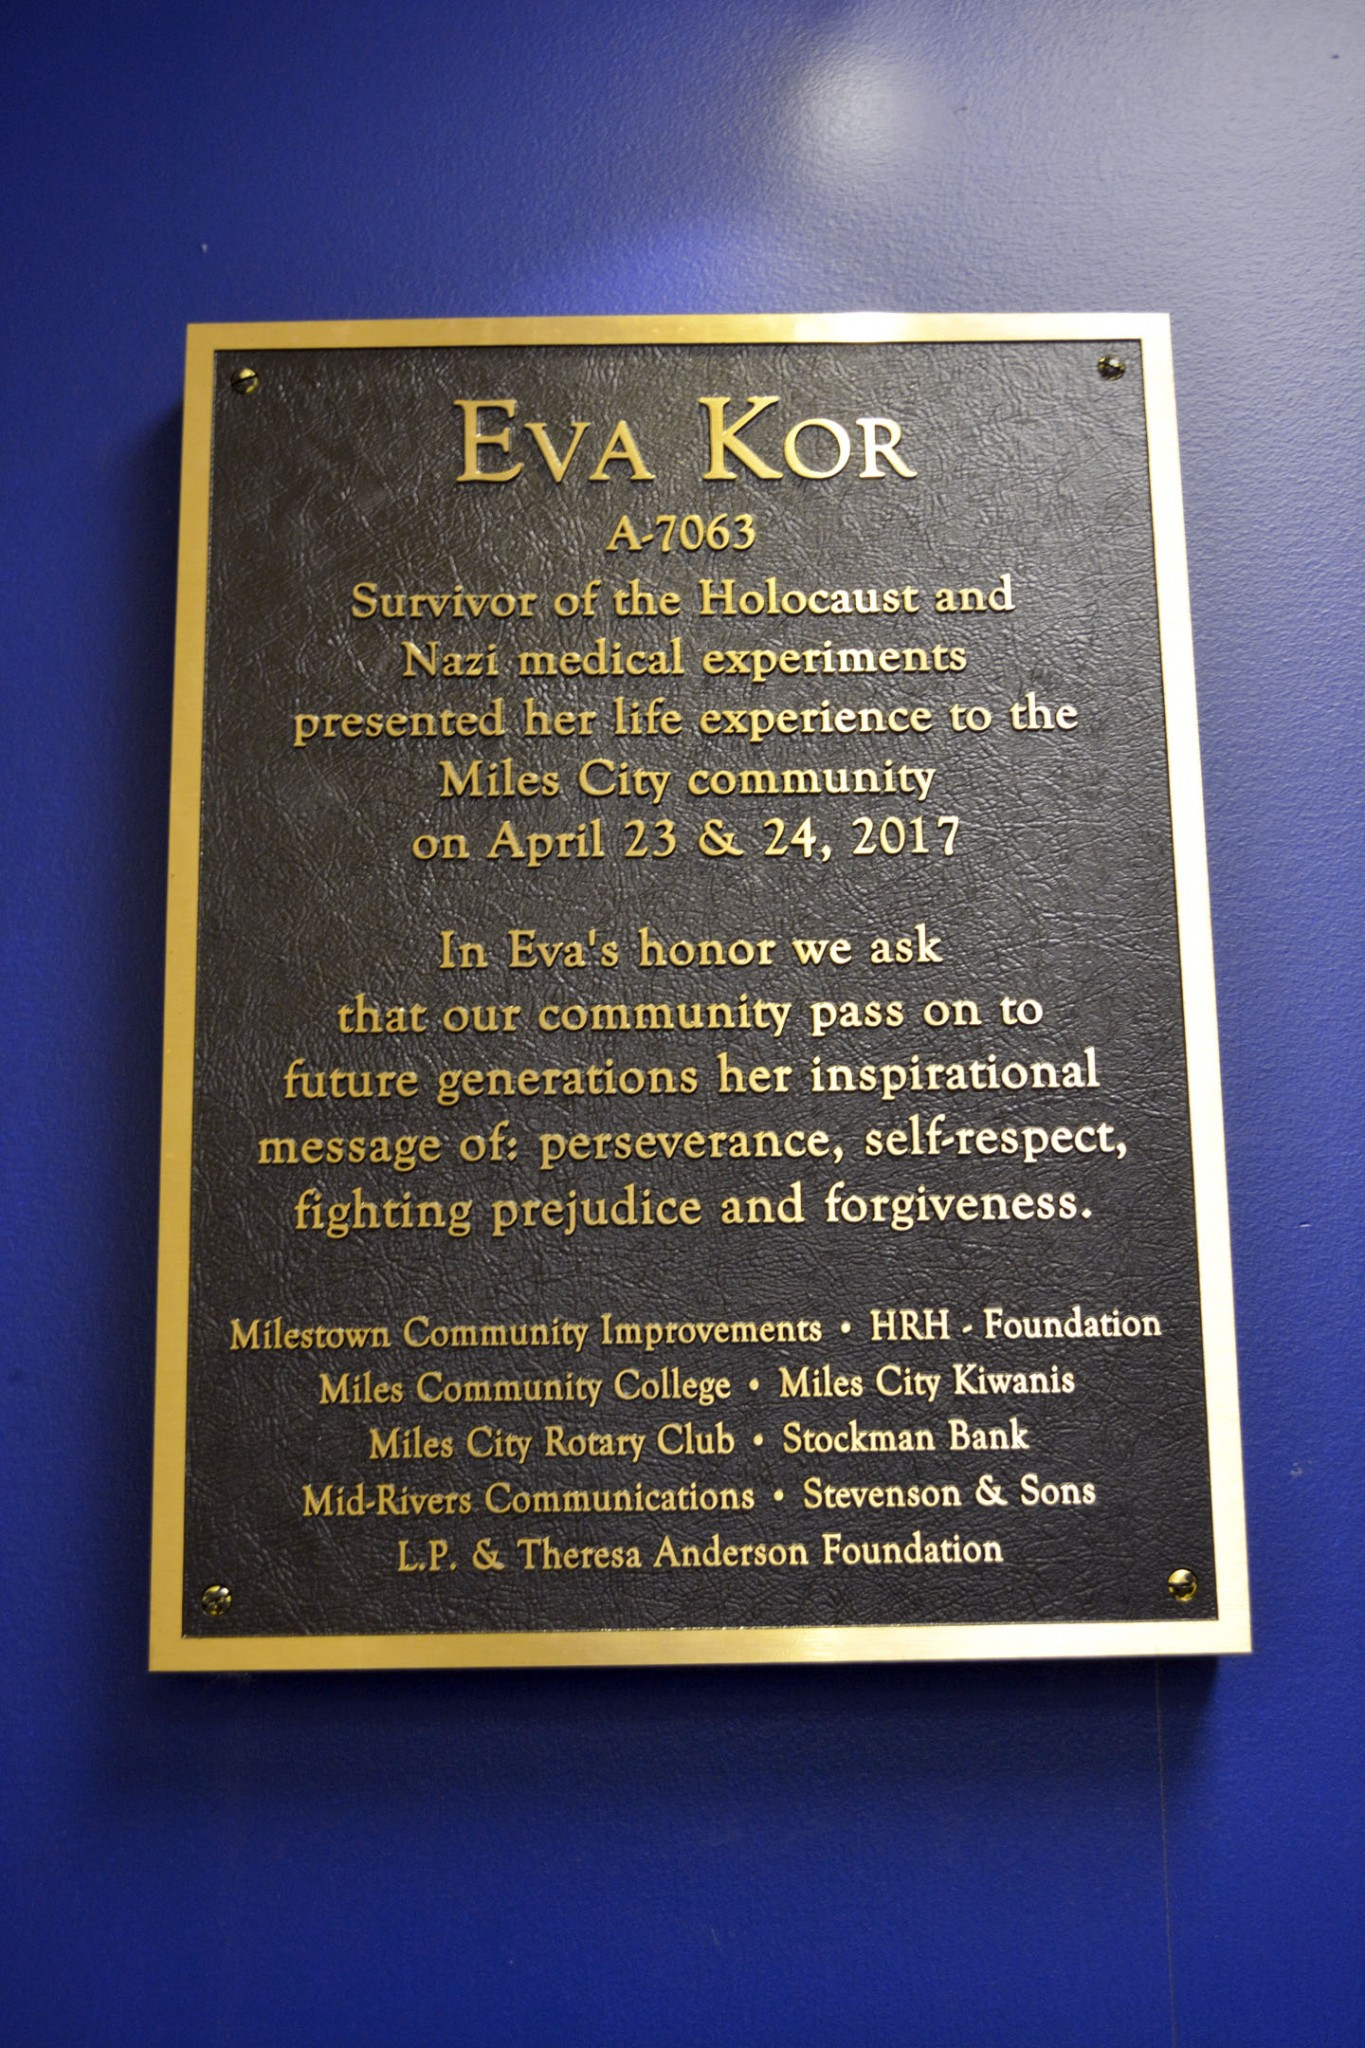 <strong>The plaque dedicated to Eve Kor hangs in the gym lobby at the high school. The money  to buy the plaque was donated by a number of local businesses and organizations, which inlcudes Milestown Community Improvements, Holy Rosary Healthcare Foundation, Miles Community College, Miles City Kiwanis, Miles City Rotary Club, Stockman Bank, Mid-Rivers Communications, Stevenson &amp; Sons and the L.P. &amp; Theresa Anderson Foundation.</strong>